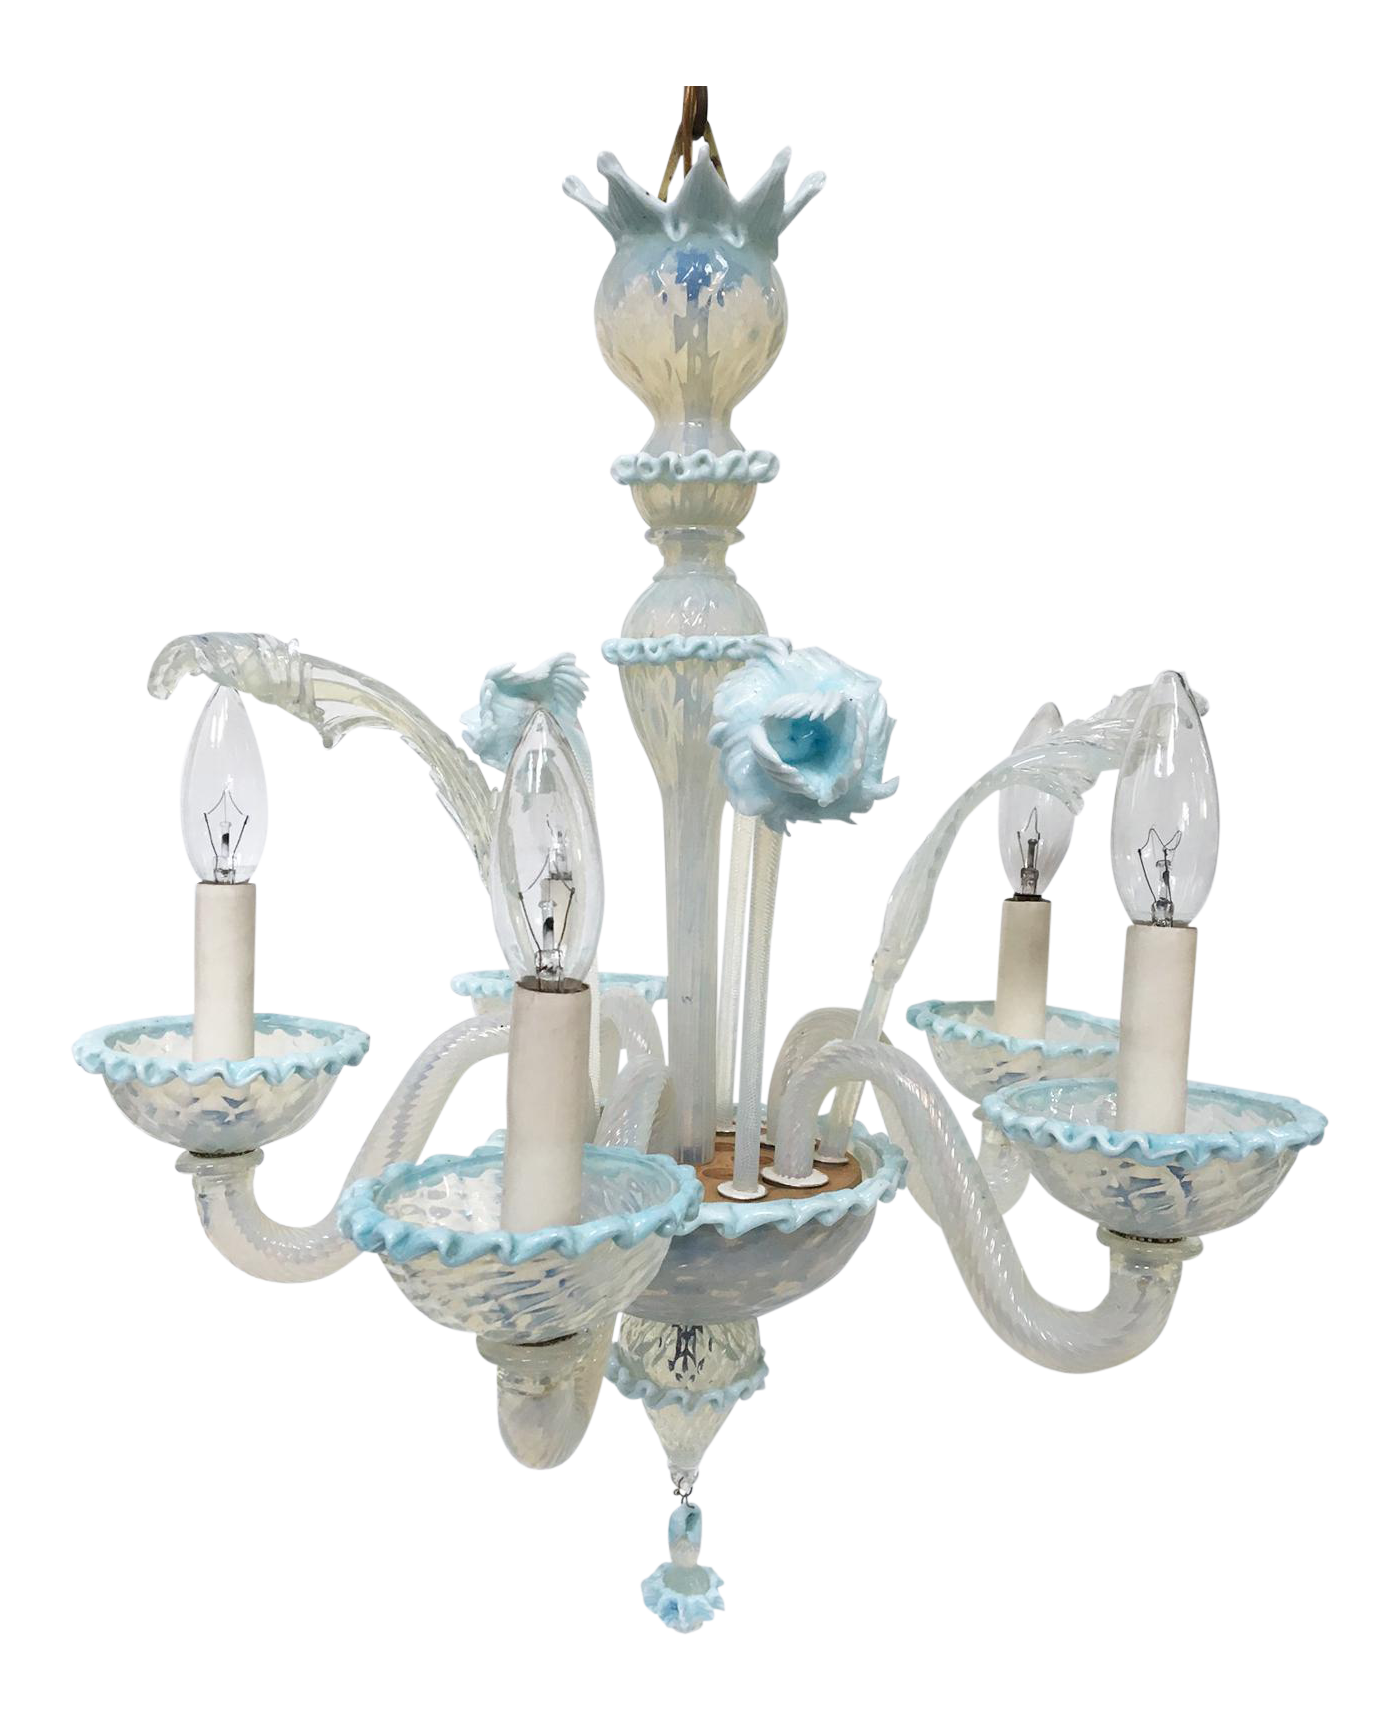 Venetian style murano hand blown art glass chandelier for Kitchen cabinet trends 2018 combined with hand blown glass wall art